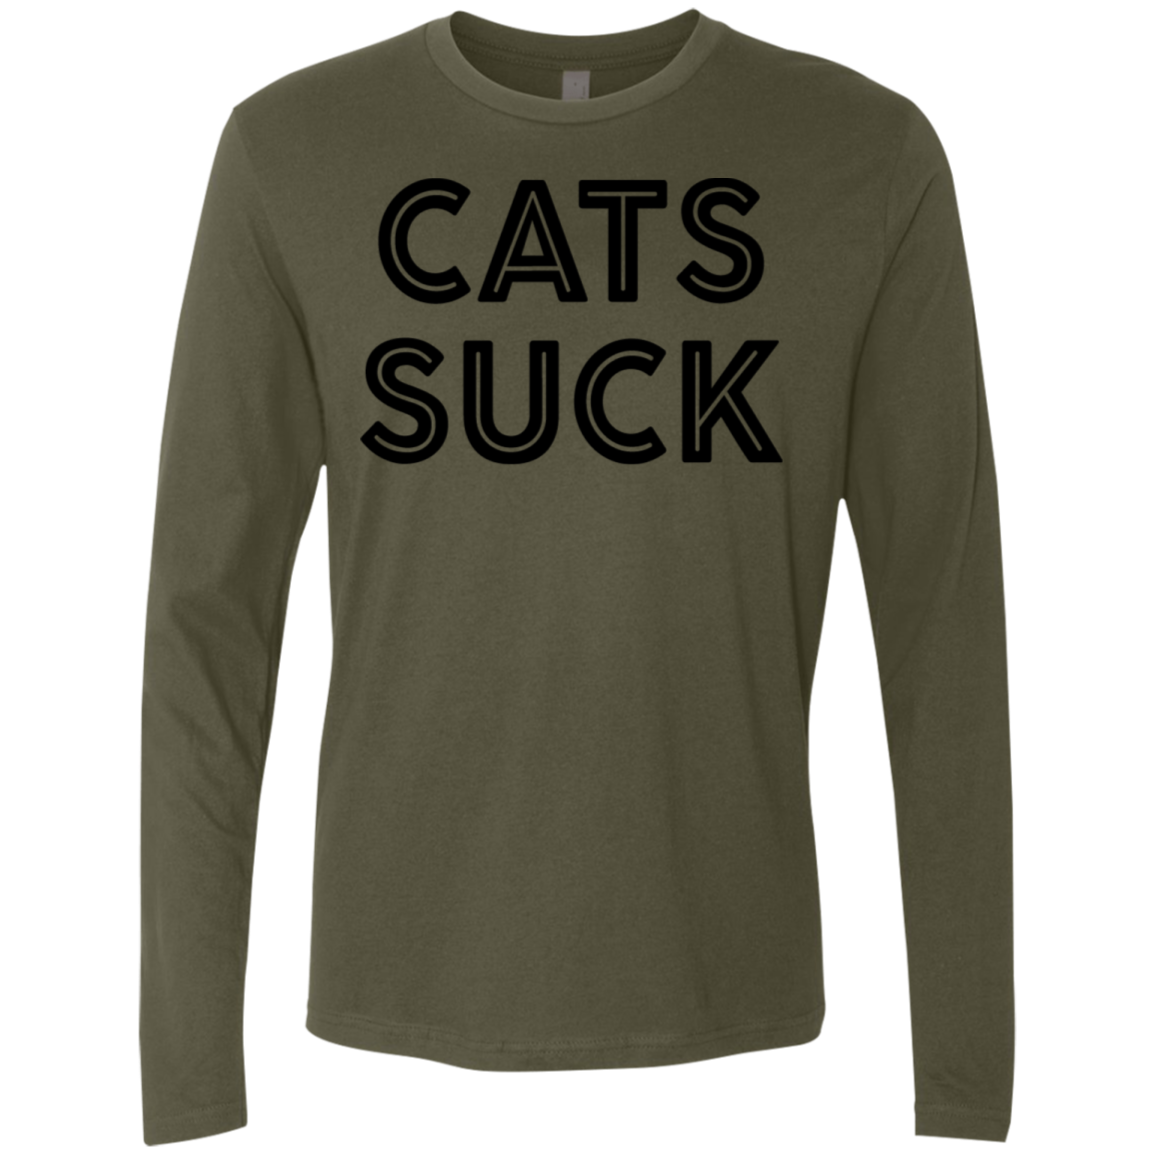 Cats Suck Men's Long Sleeve Tee